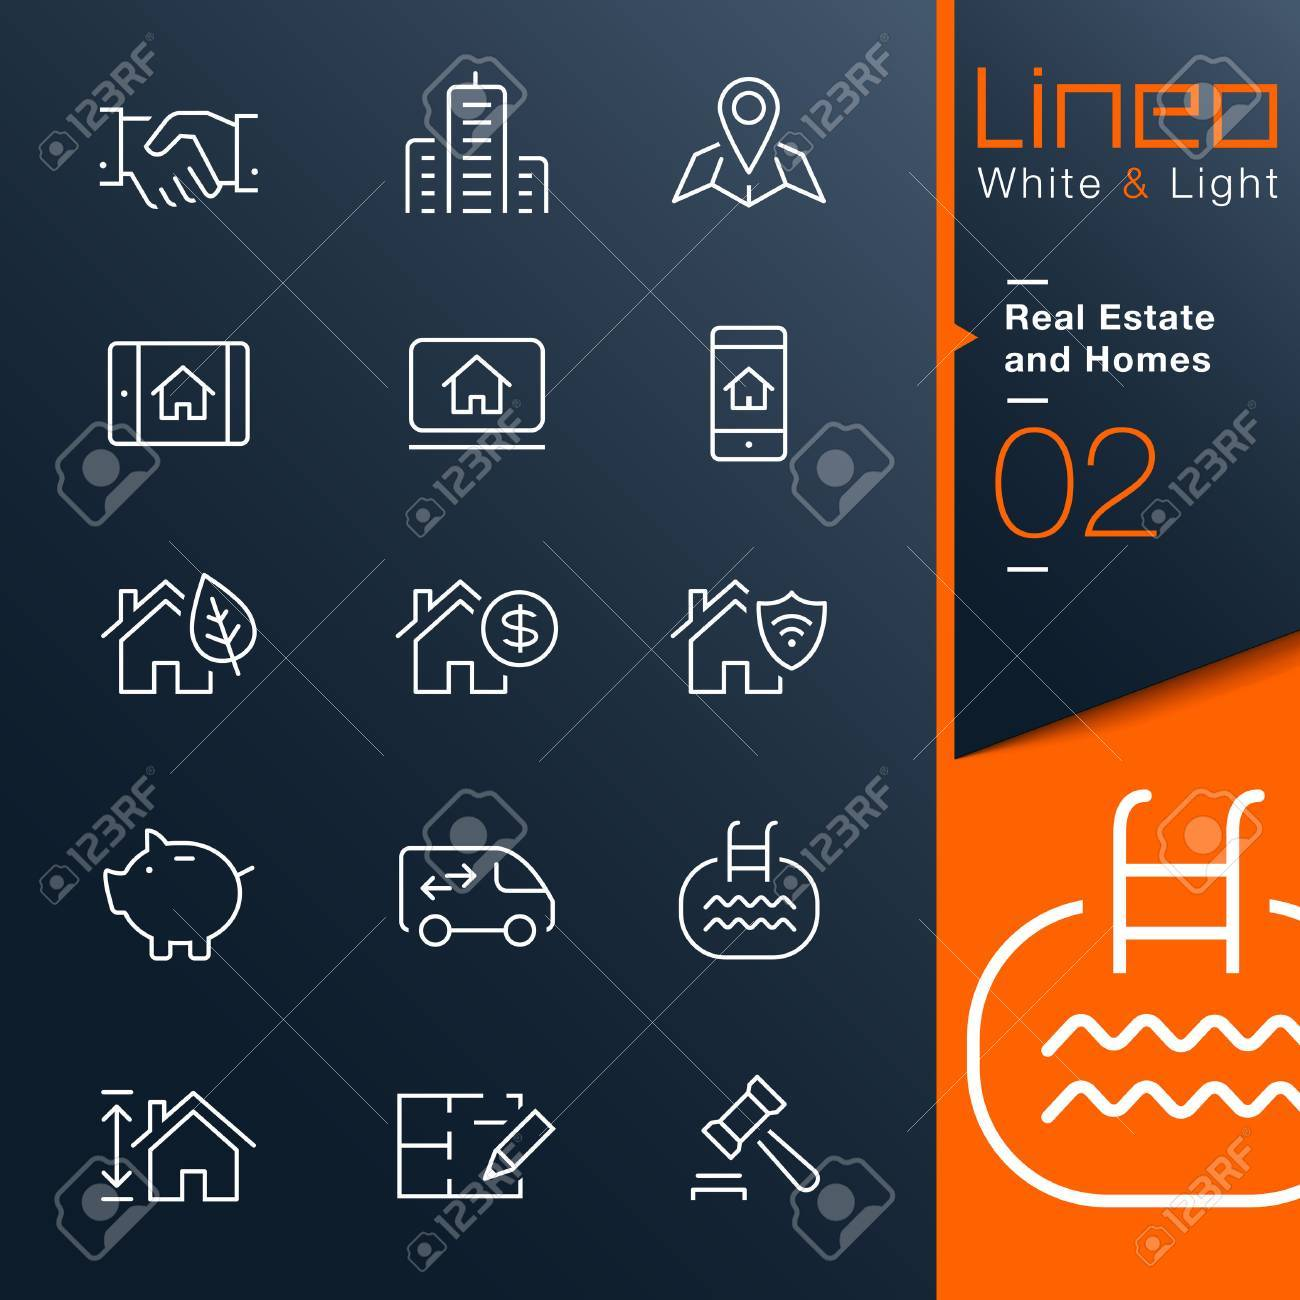 Lineo White   Light - Real Estate and Homes outline icons Stock Vector - 27440116